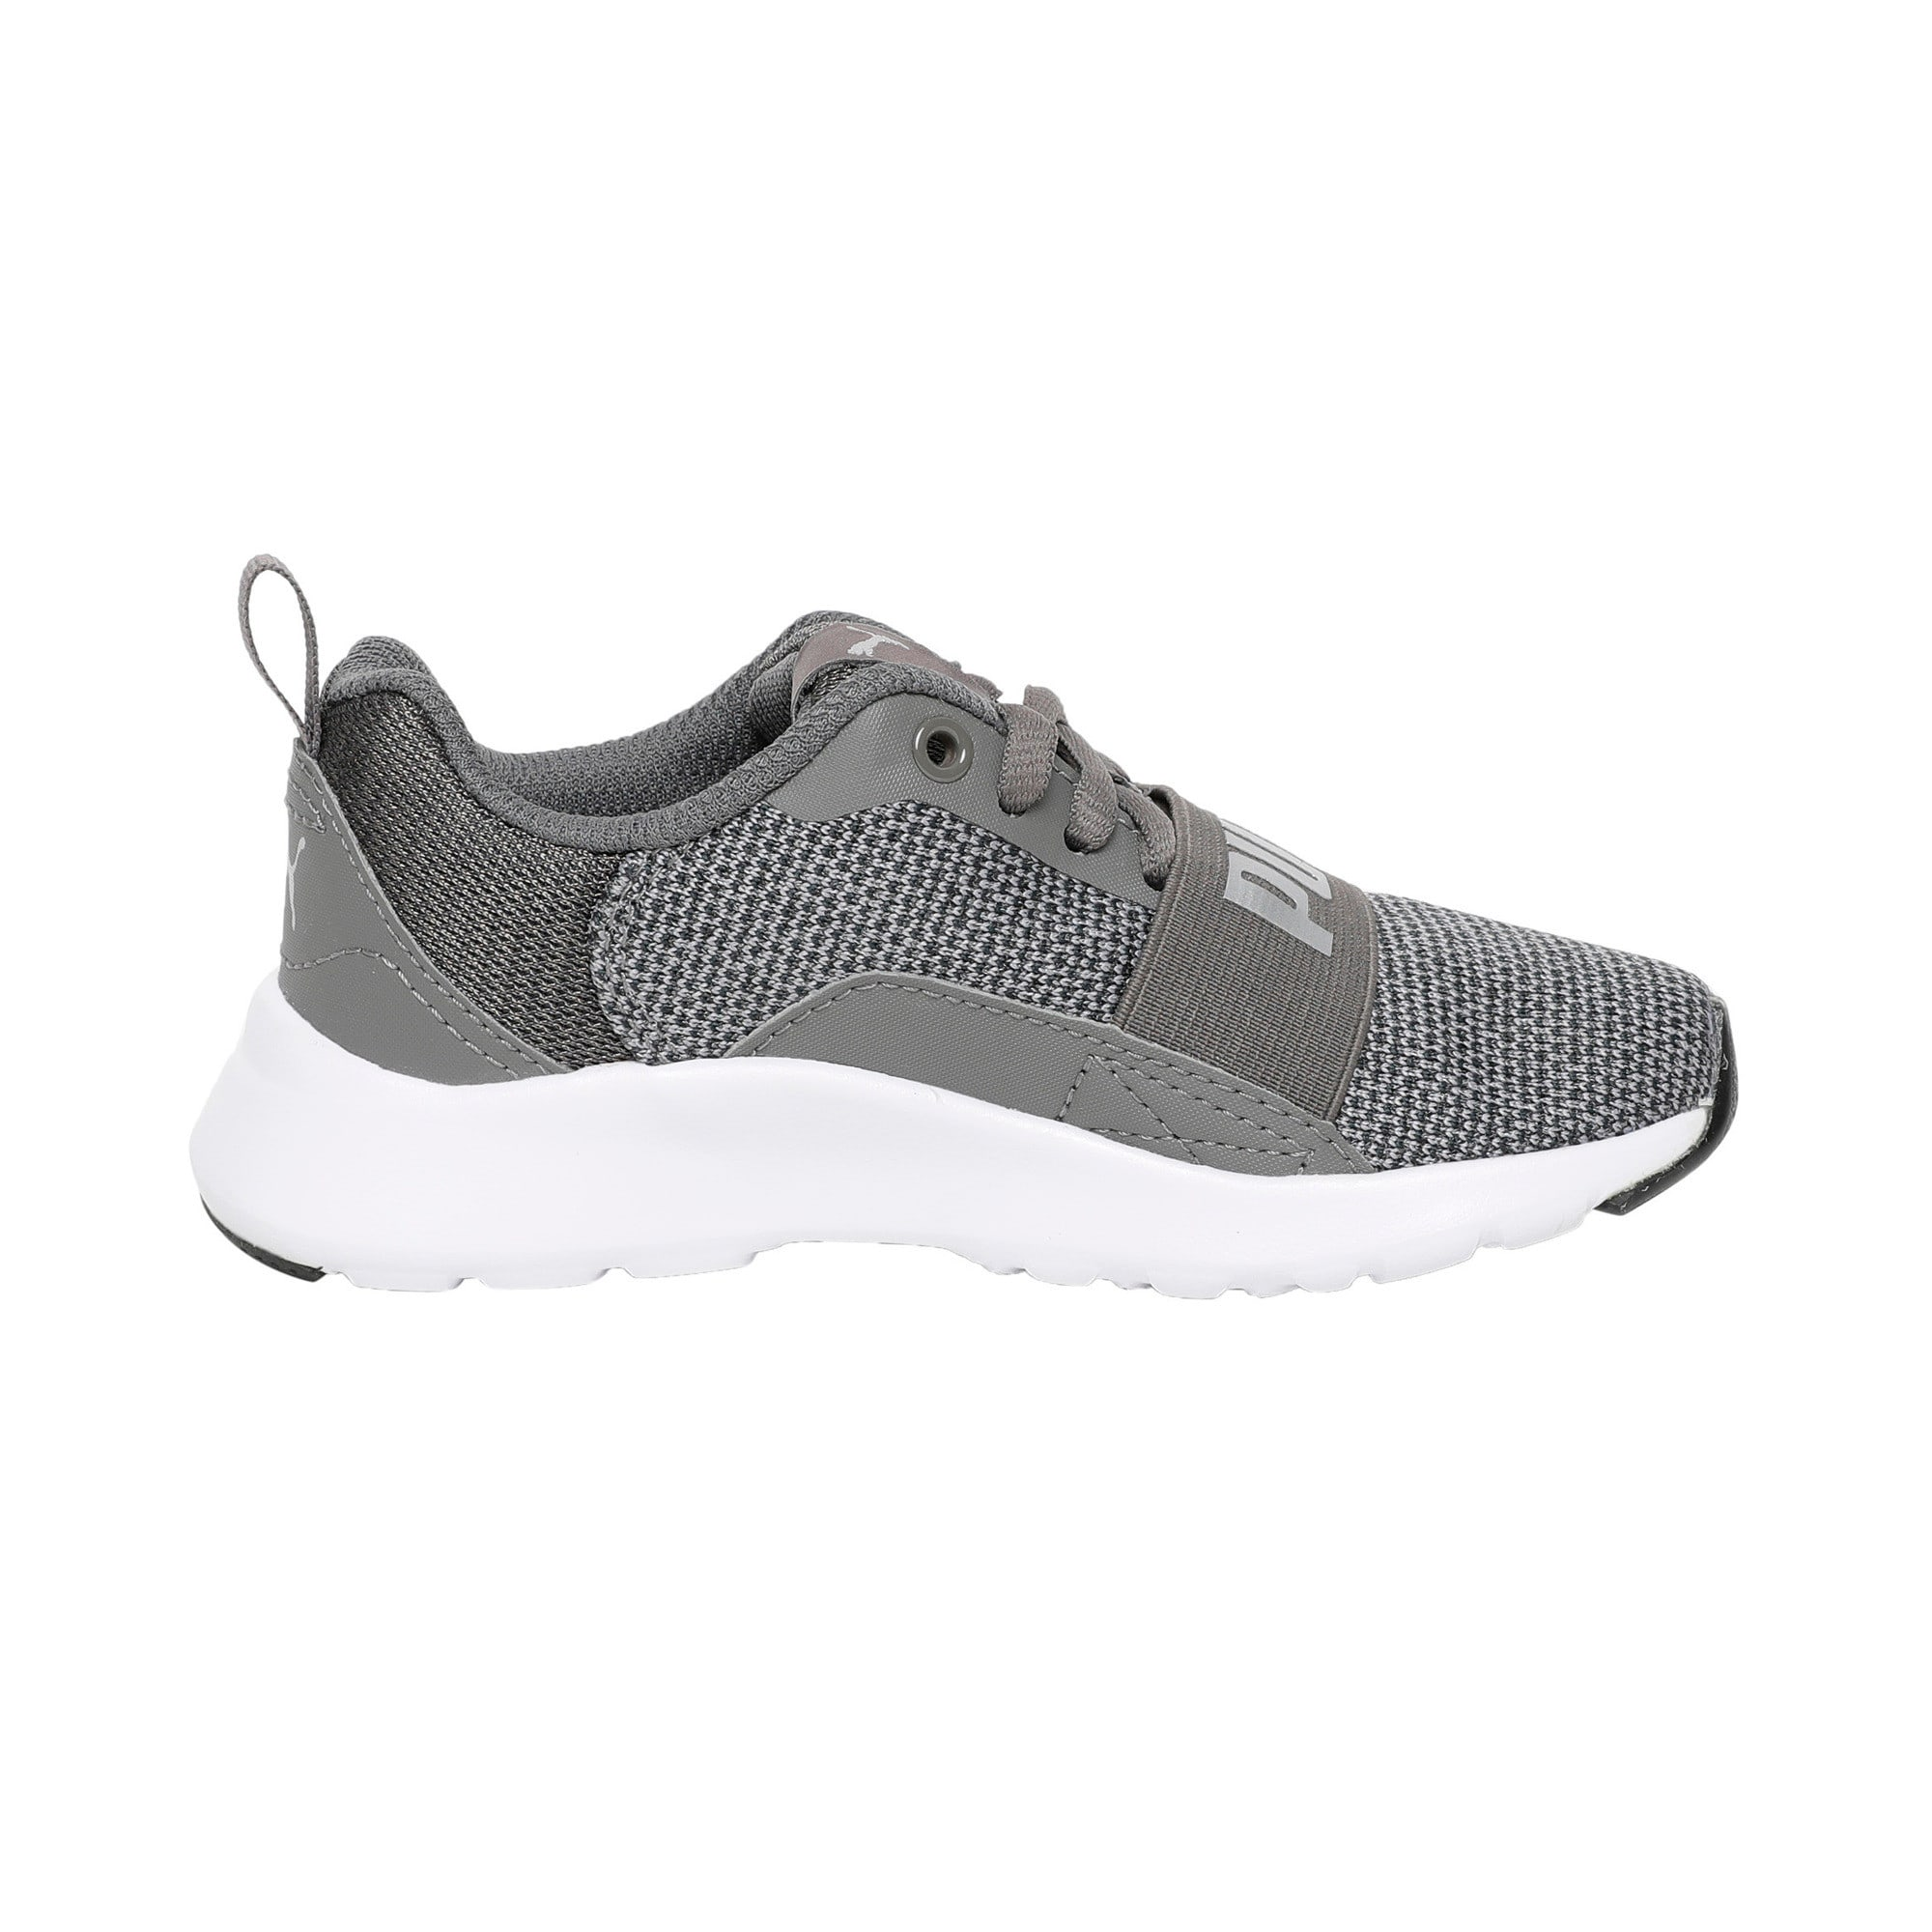 Thumbnail 5 of Wired Knit Kids' Trainers, Charcoal Gray-Puma Silver, medium-IND